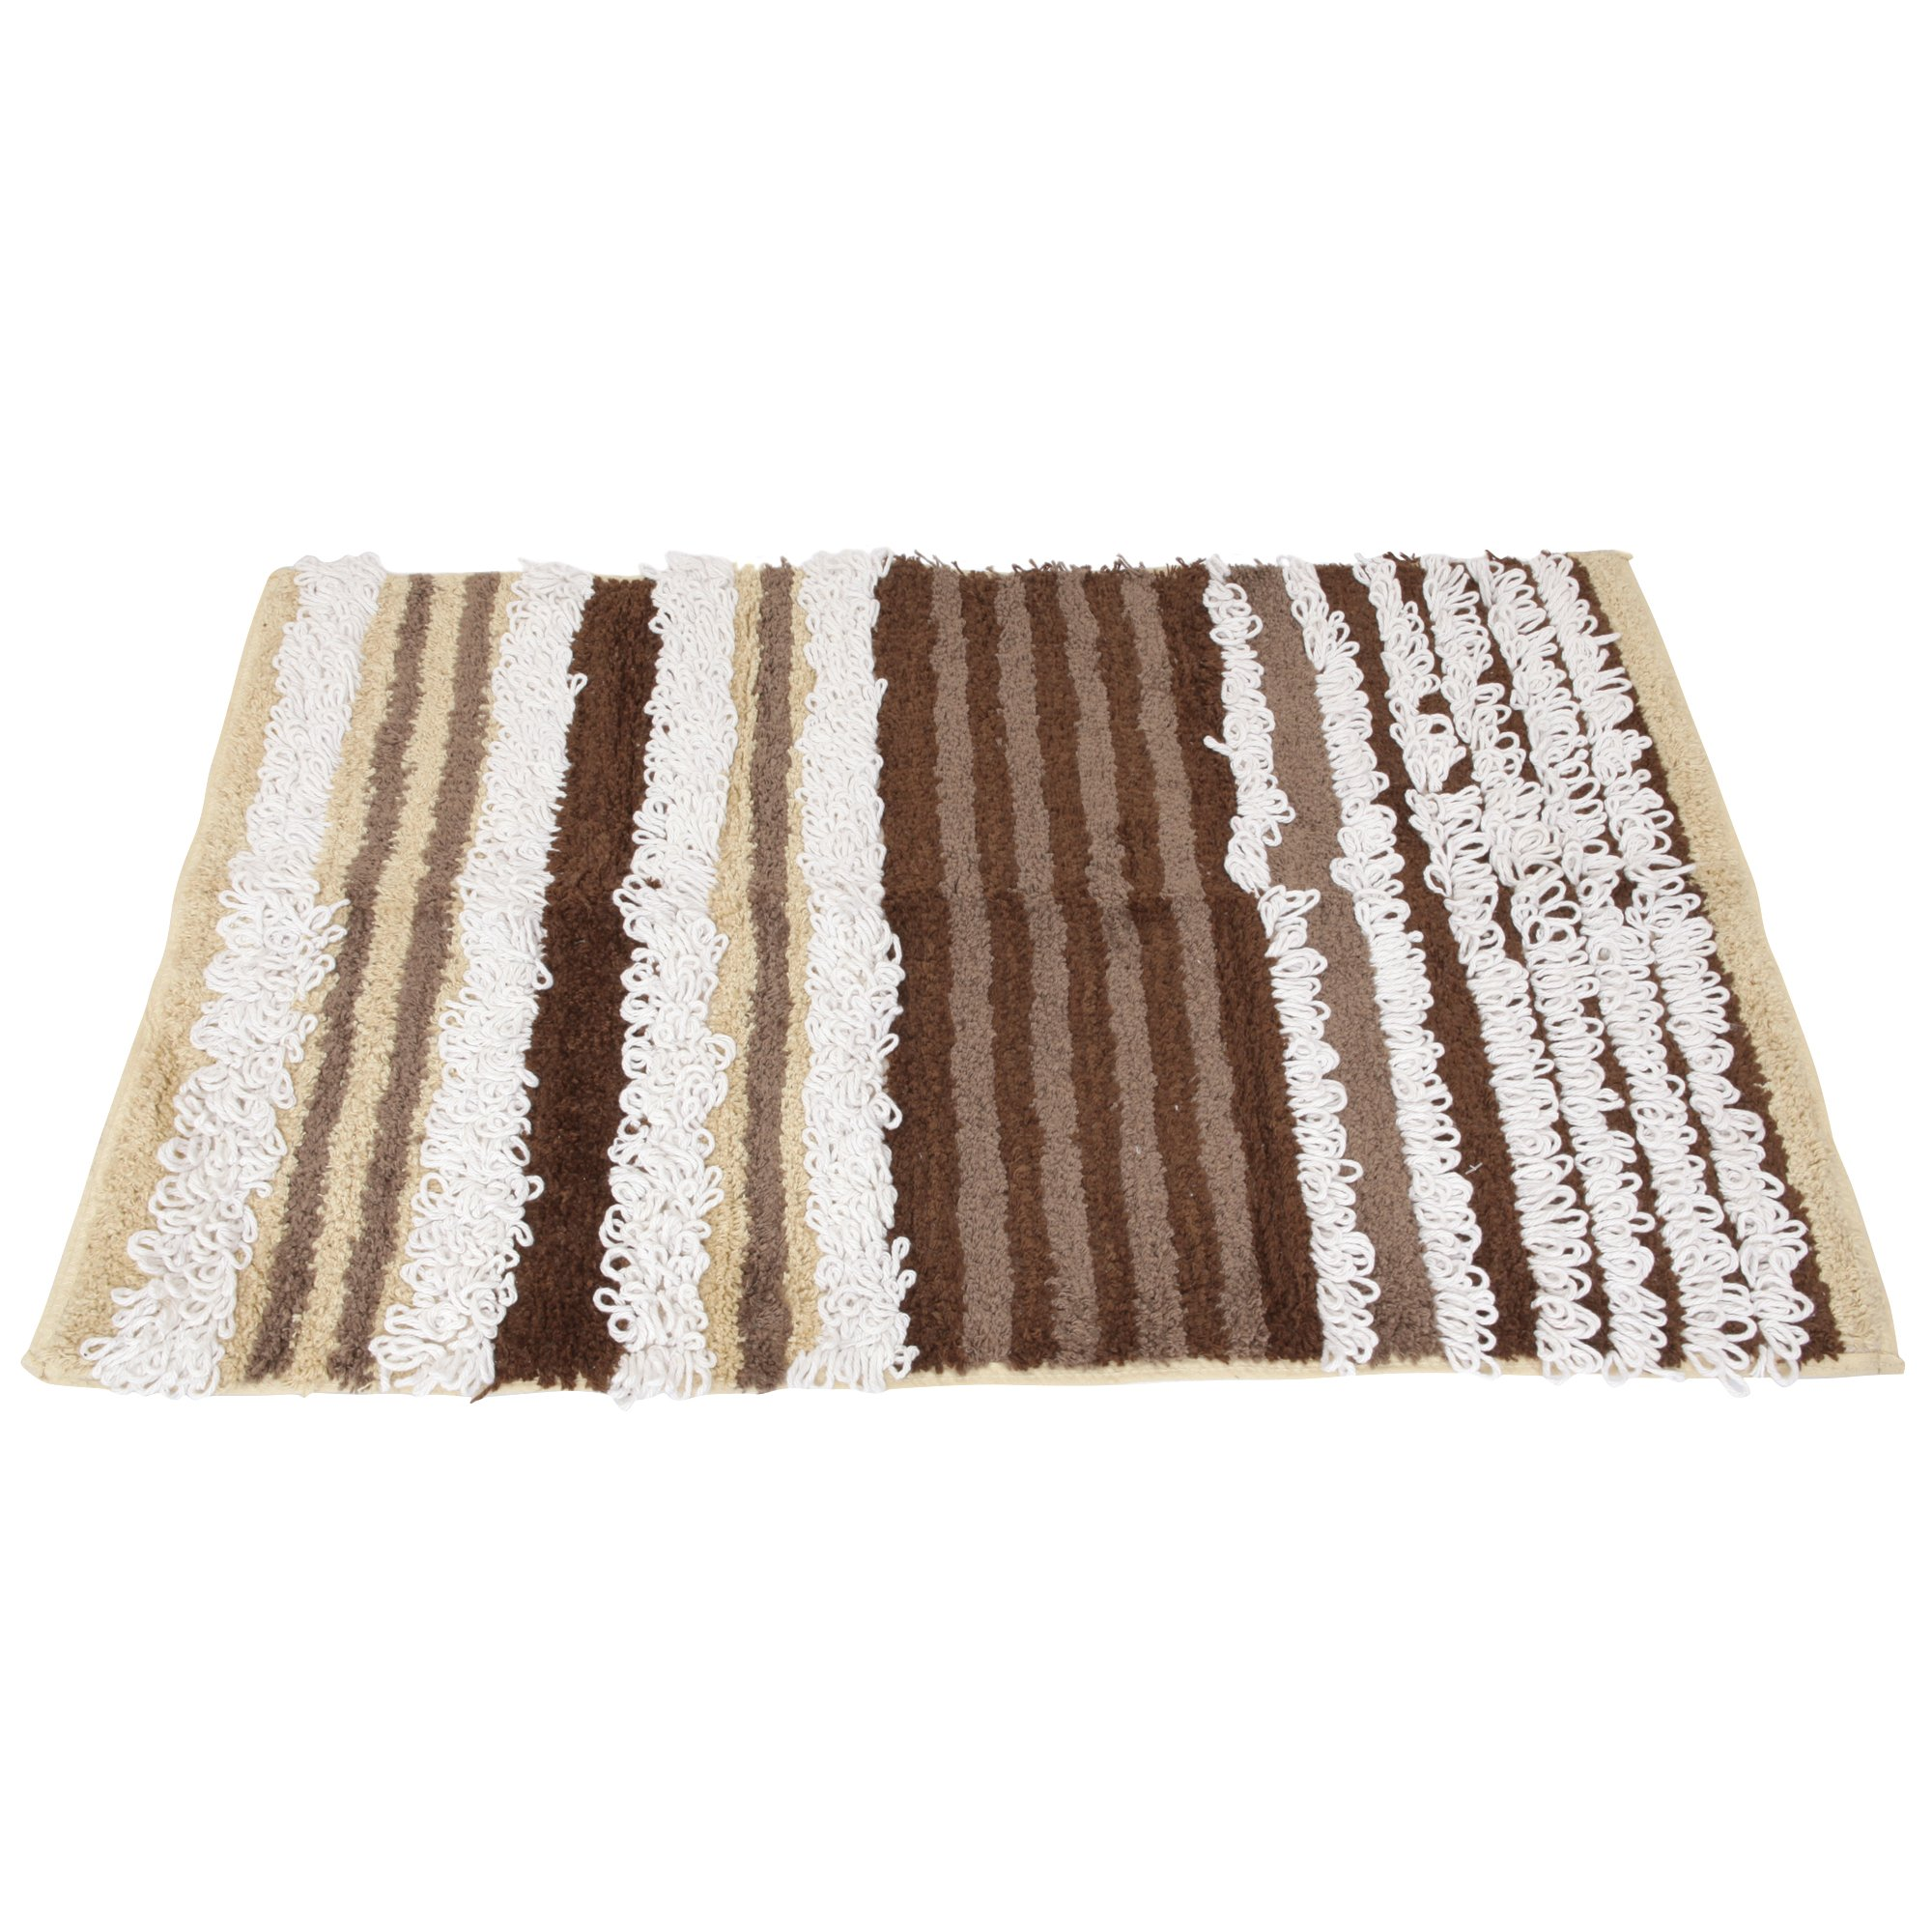 100 Cotton Striped Bathroom Bath Mat Rug Ebay